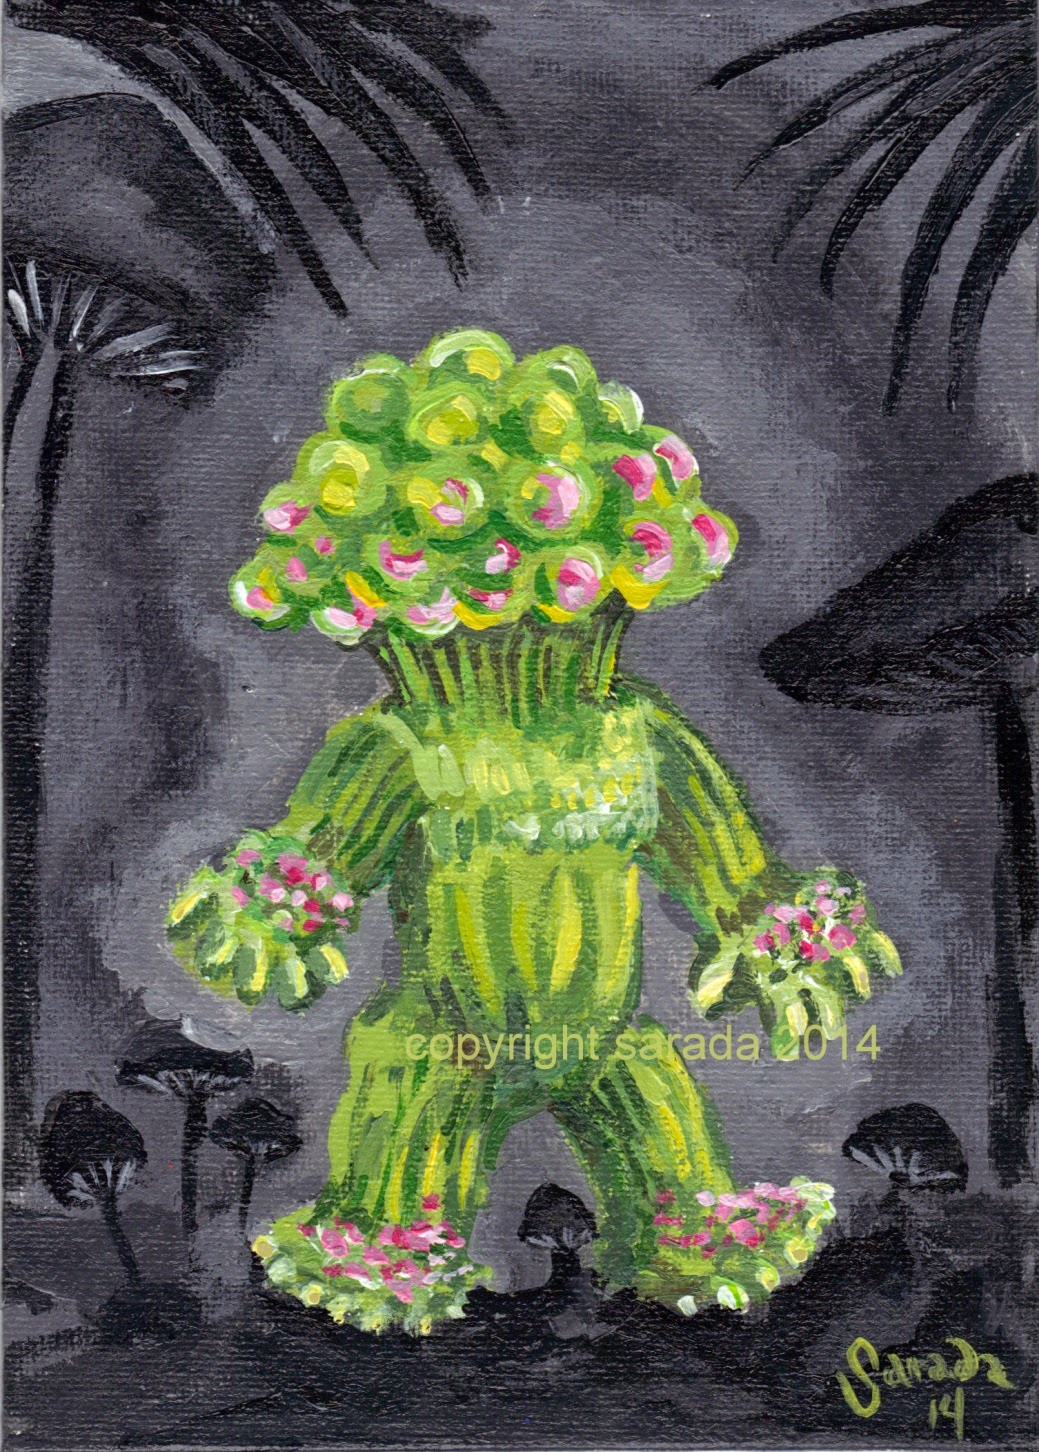 https://www.etsy.com/listing/197493731/green-mushroom-person-fantasy-sci-fi-art?ref=shop_home_active_9